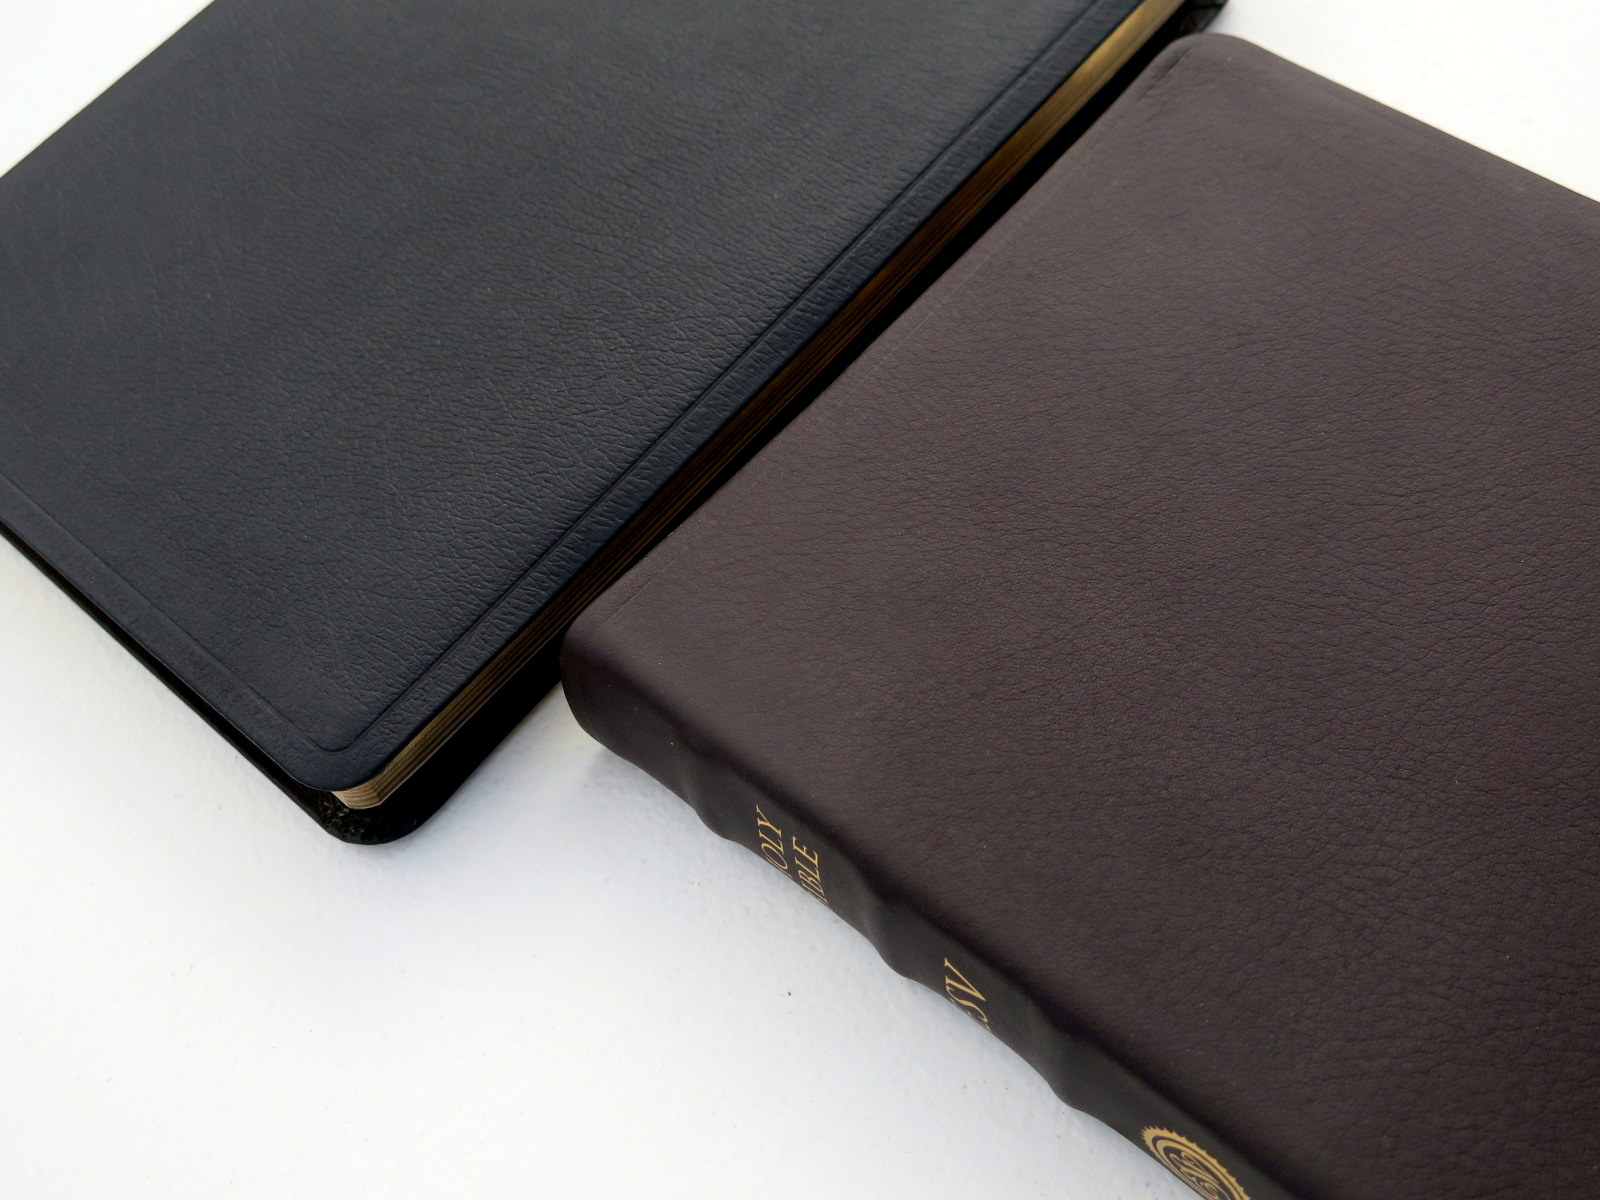 ESV Study Bible Large Print Black Genuine Leather | eBay